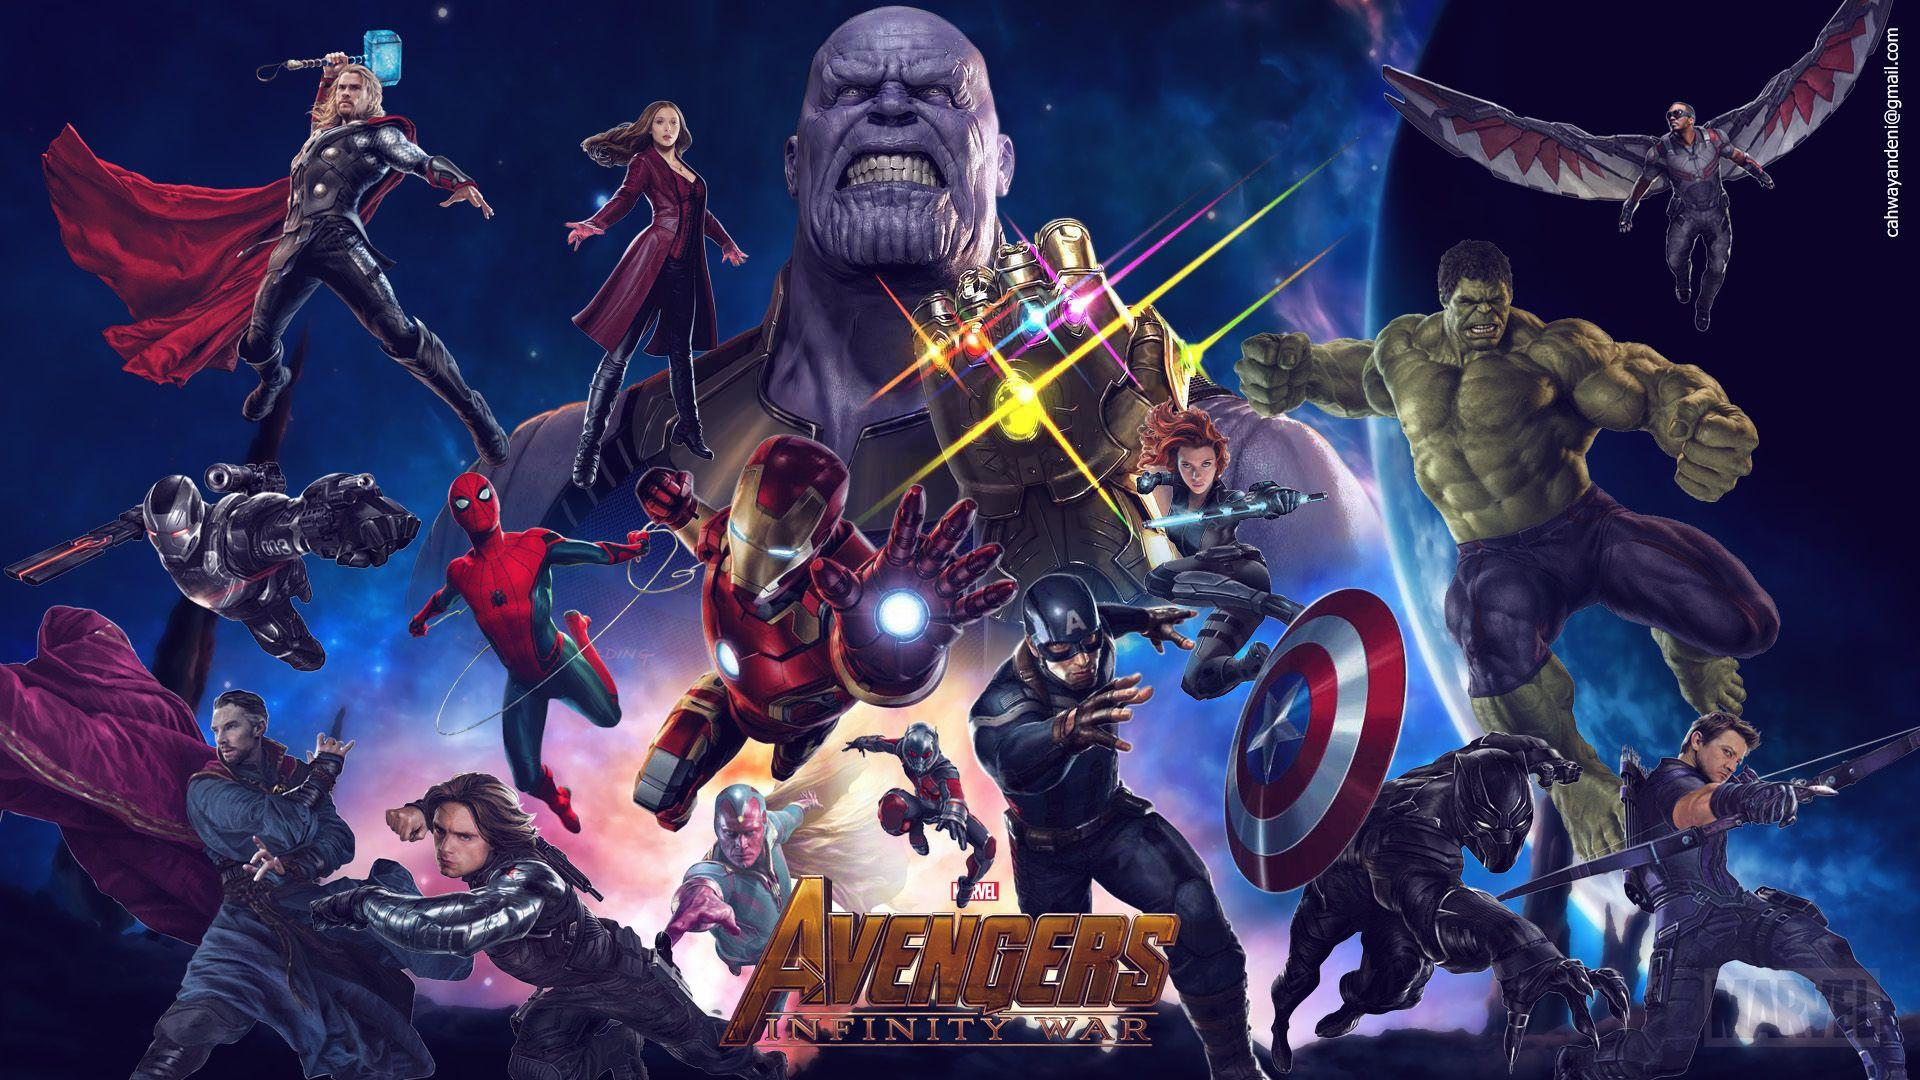 Avengers Infinity War 2018 Movie Superheroes Wallpapers and